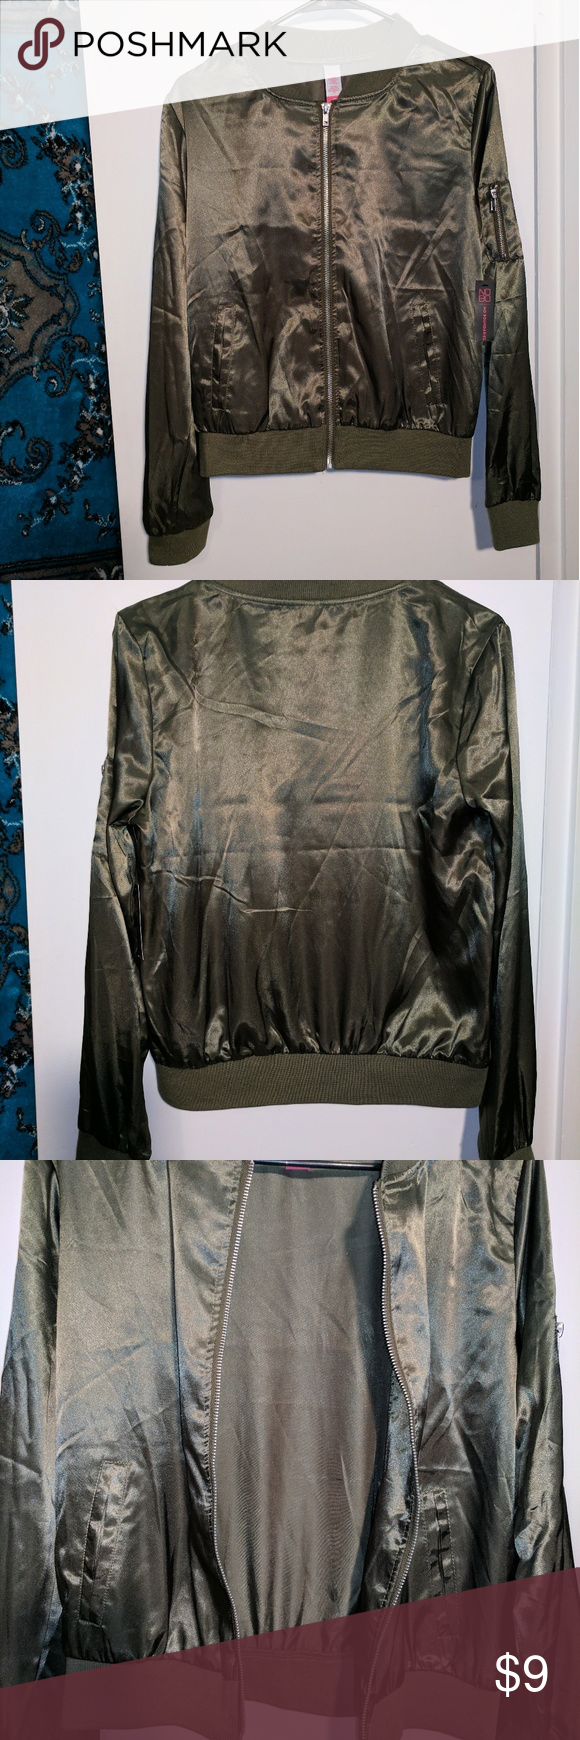 NWT lightweight Bomber jacket Army green M Boutique Army